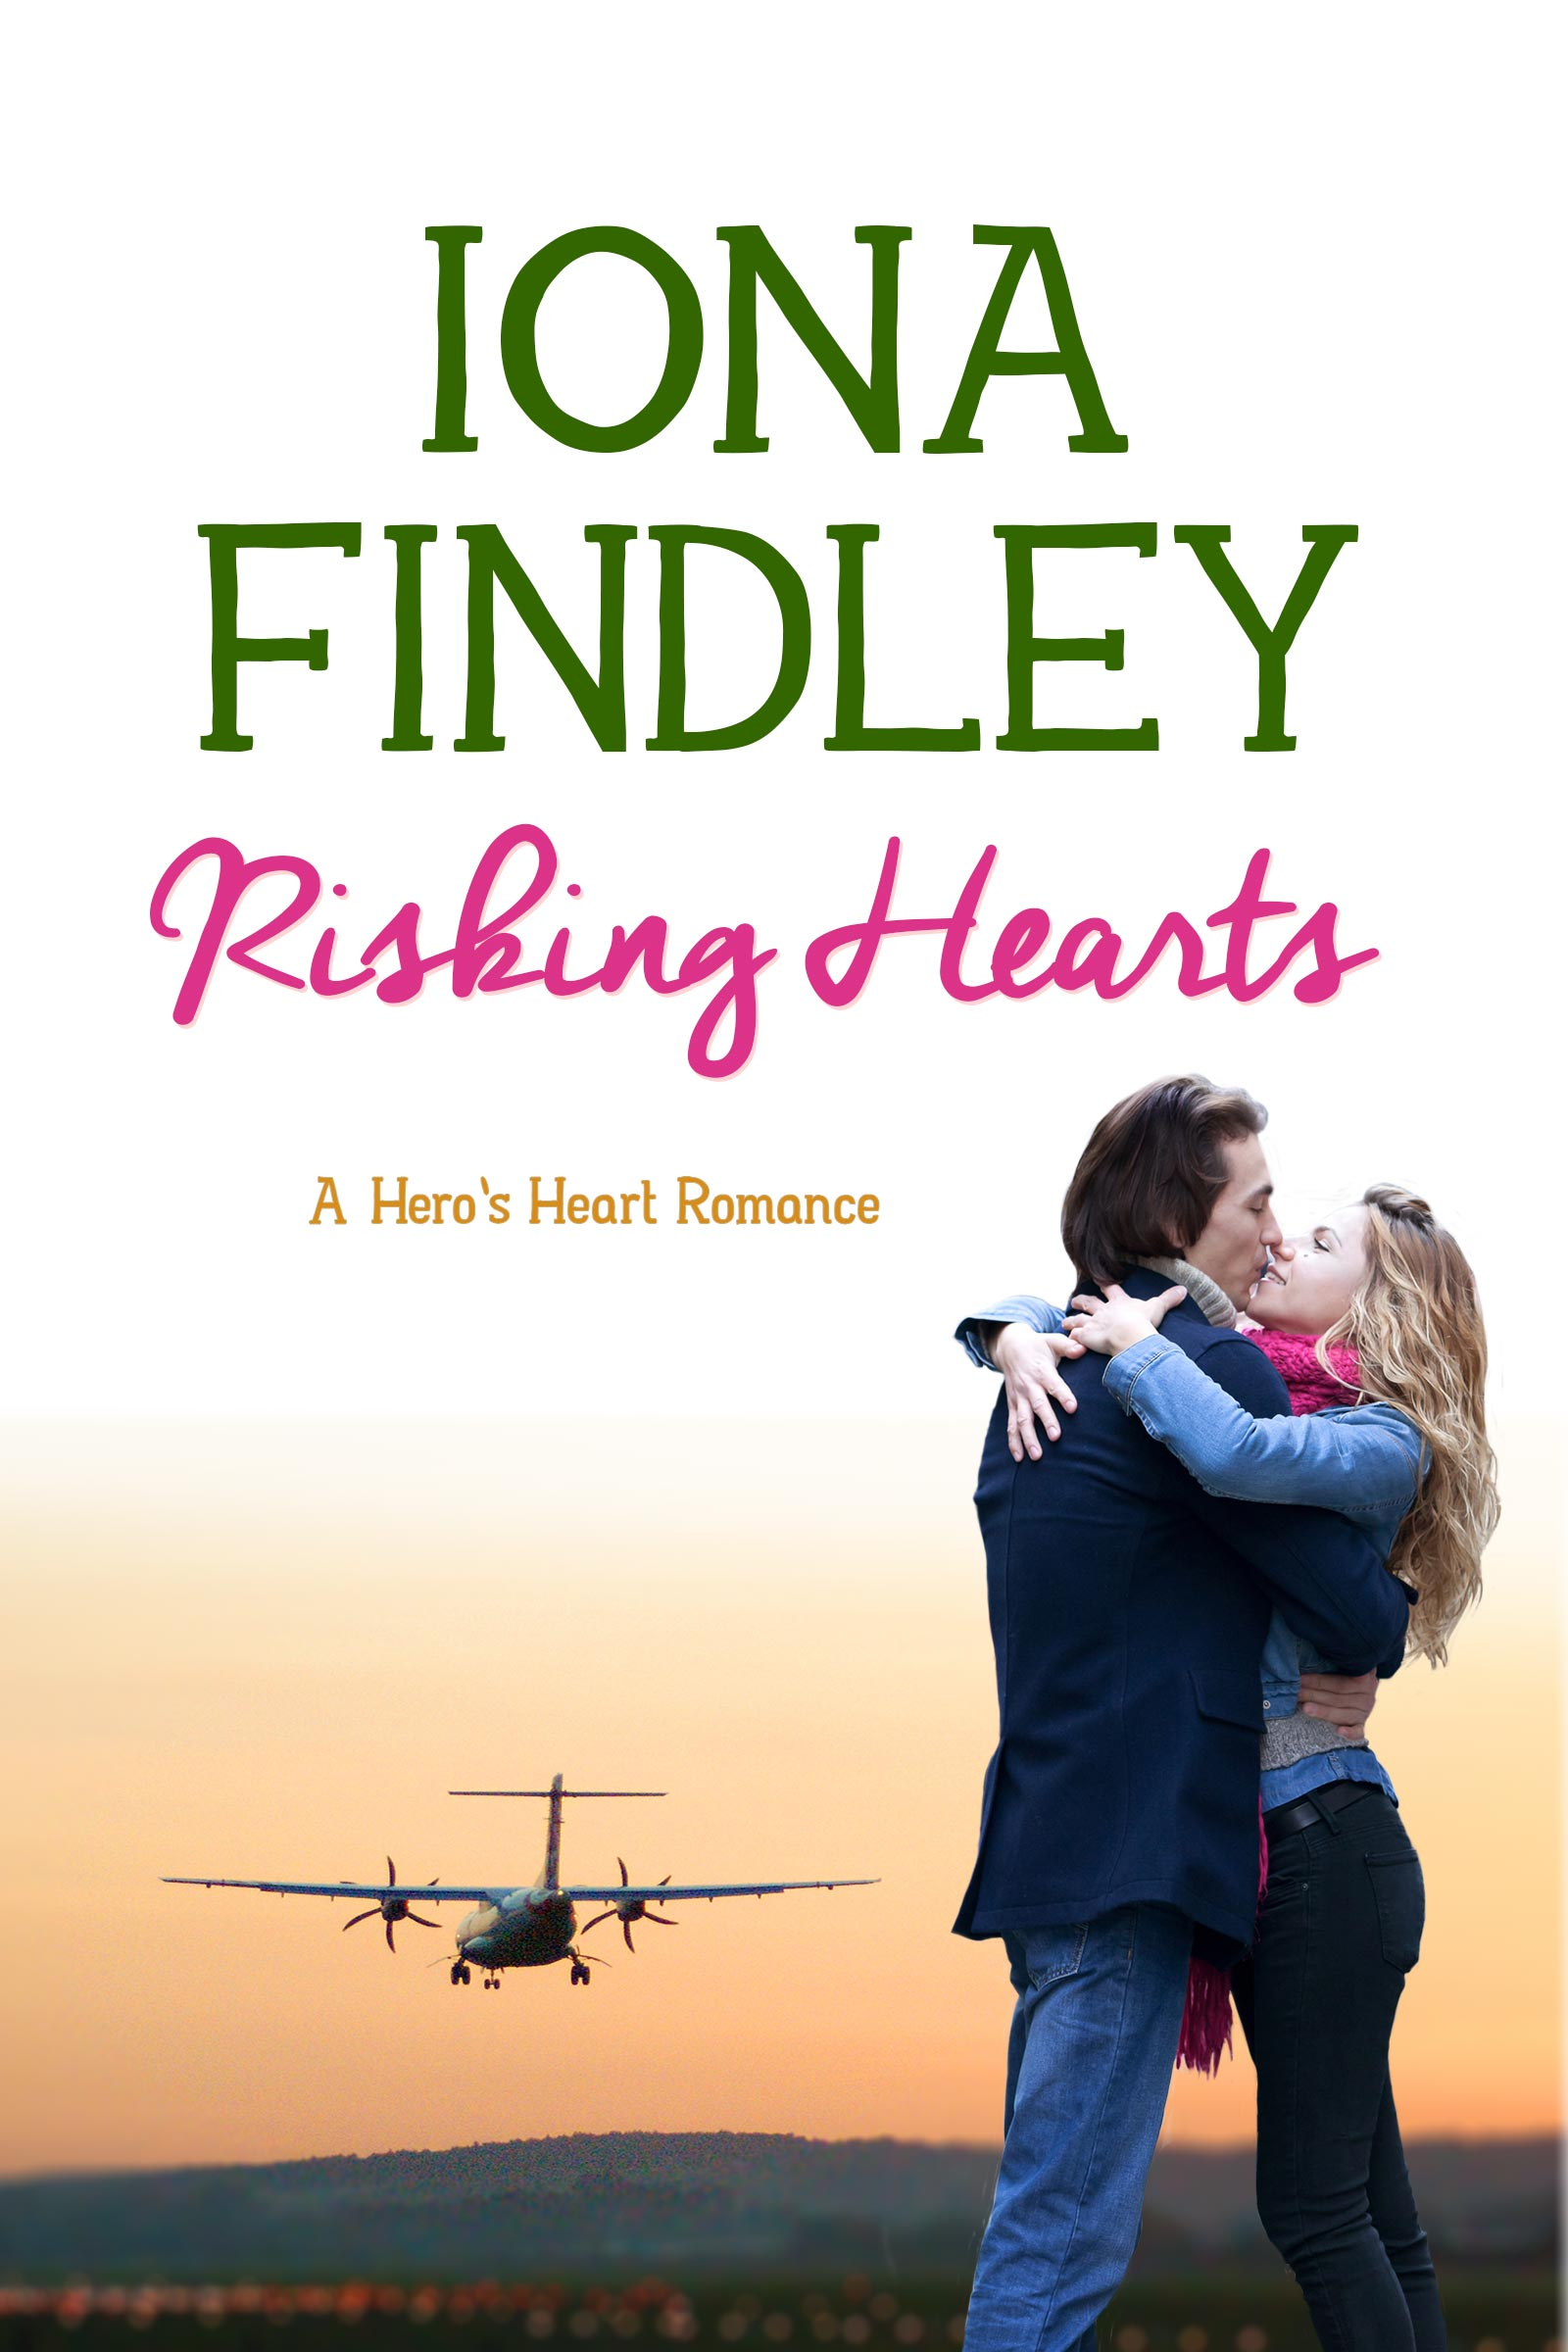 Iona Findley's Risking Hearts